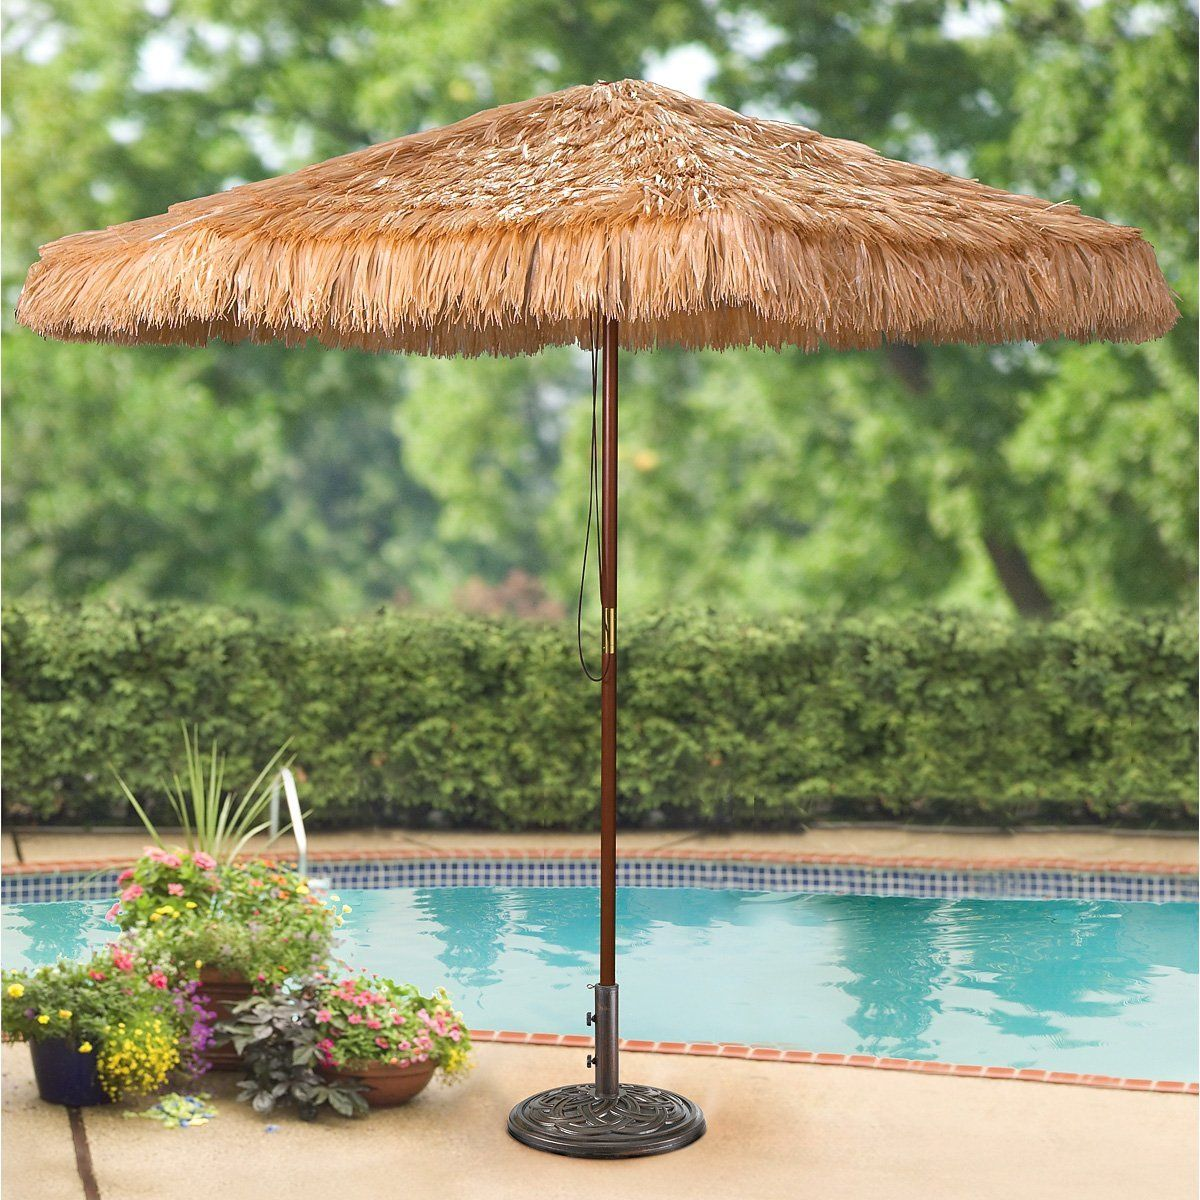 Amazon.com : CASTLECREEK 9 foot Thatched Tiki Umbrella : Patio Umbrellas :  Patio, - Amazon.com : CASTLECREEK 9 Foot Thatched Tiki Umbrella : Patio